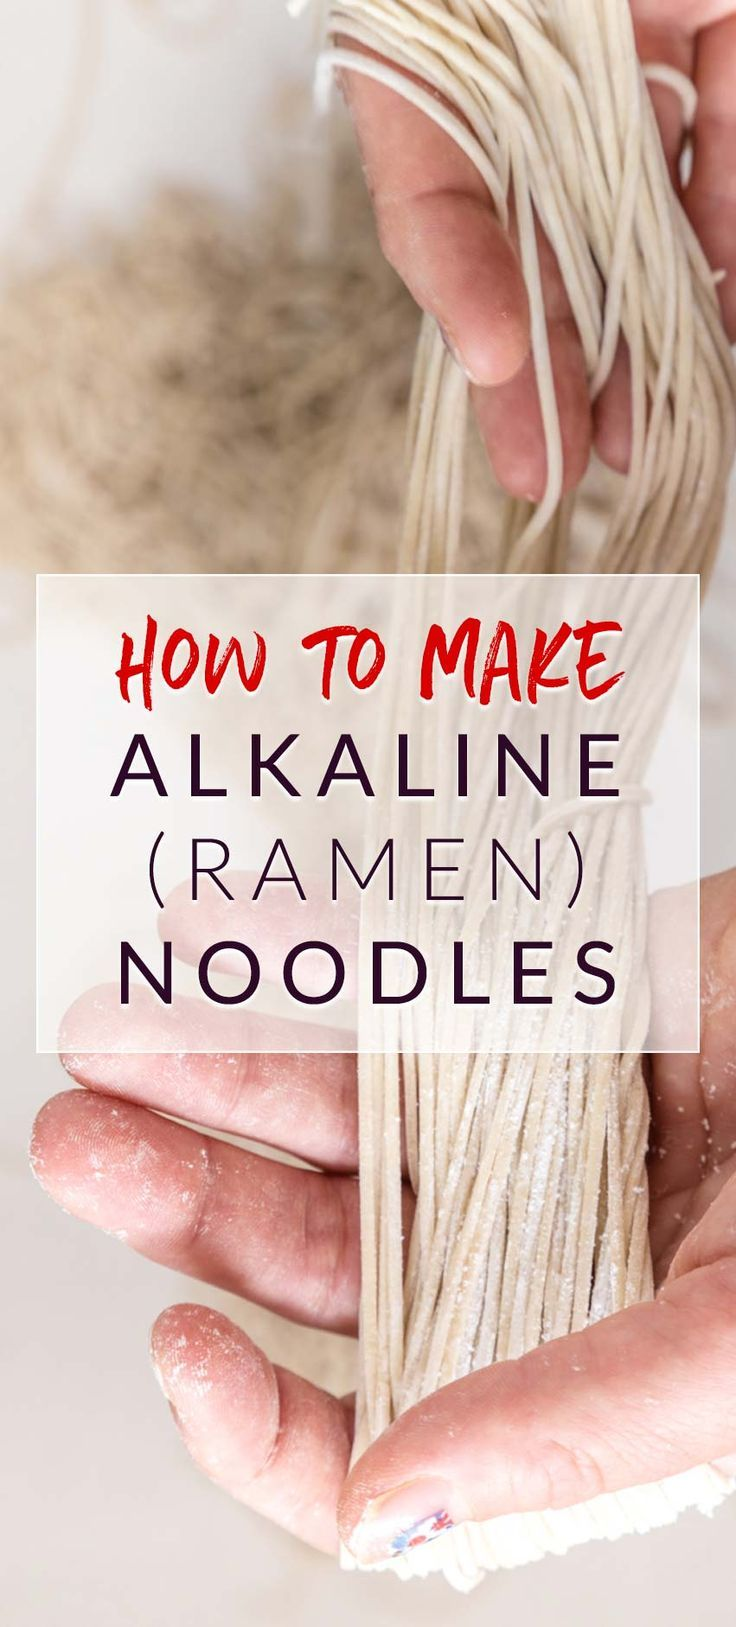 A tutorial on how to make ramen noodles from scratch. Homemade alkaline noodles are worth every effort and the recipe is vegan friendly.